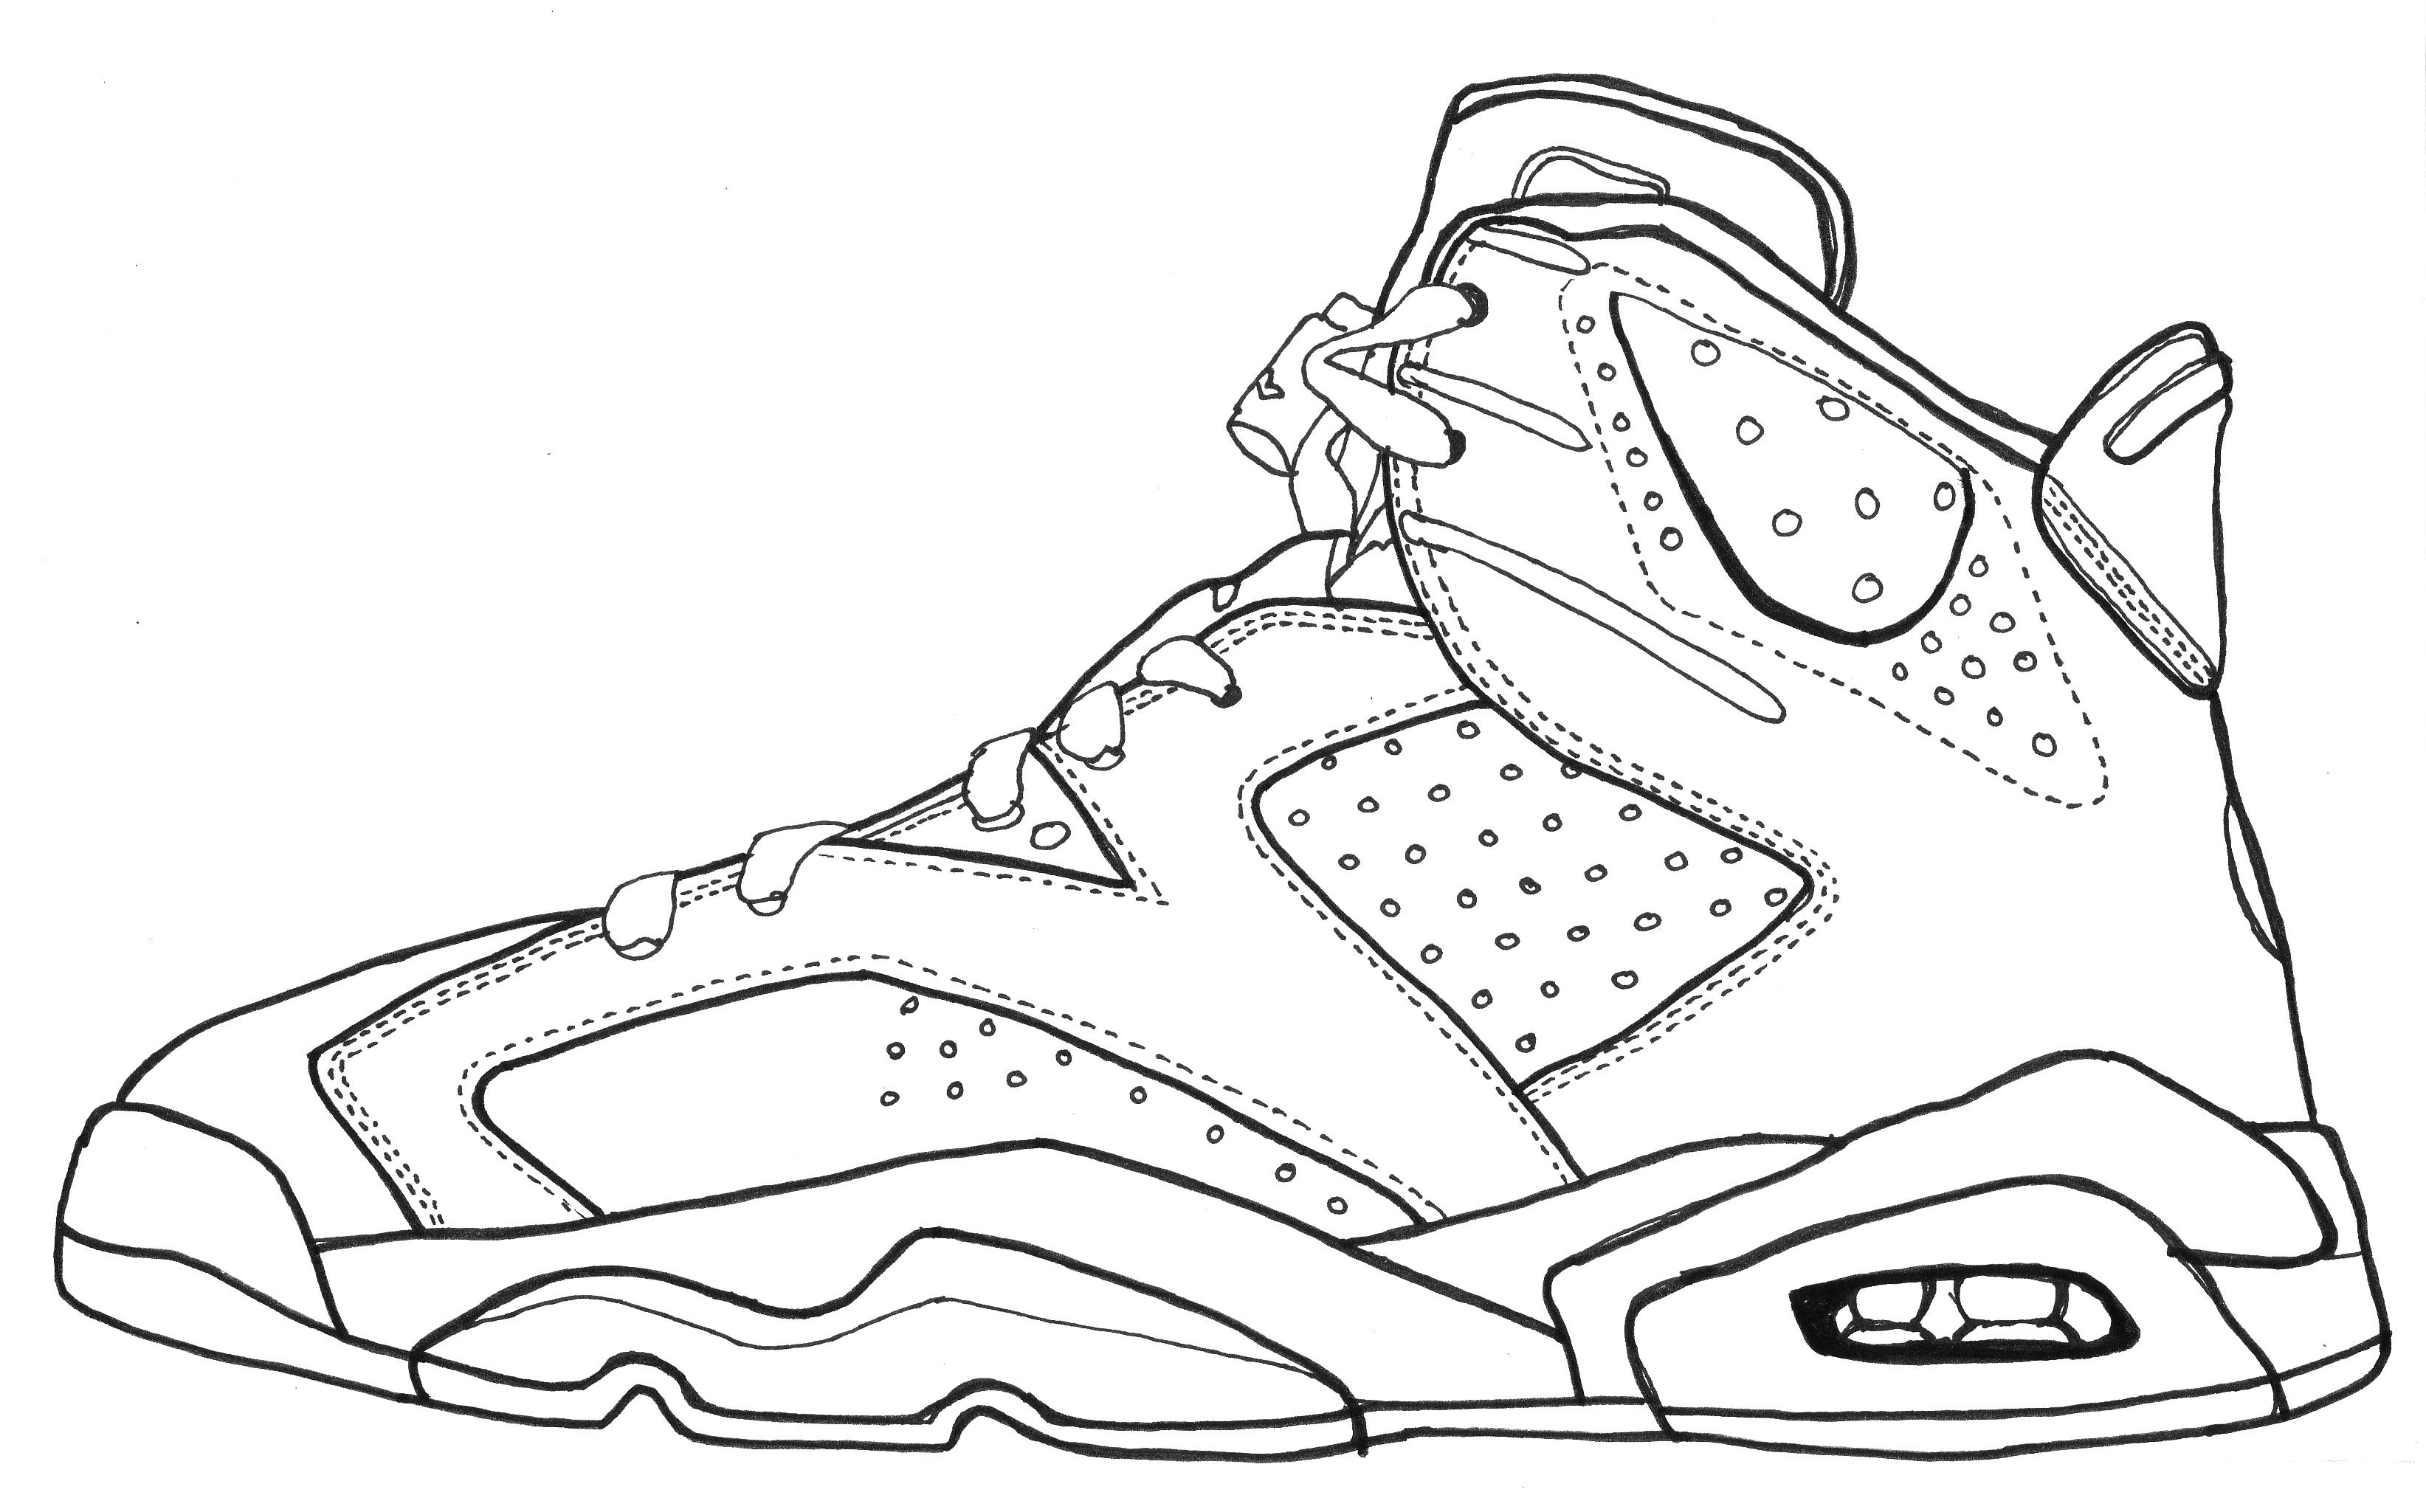 - Jordan VI Sketch Black And White Line Drawing (With Images